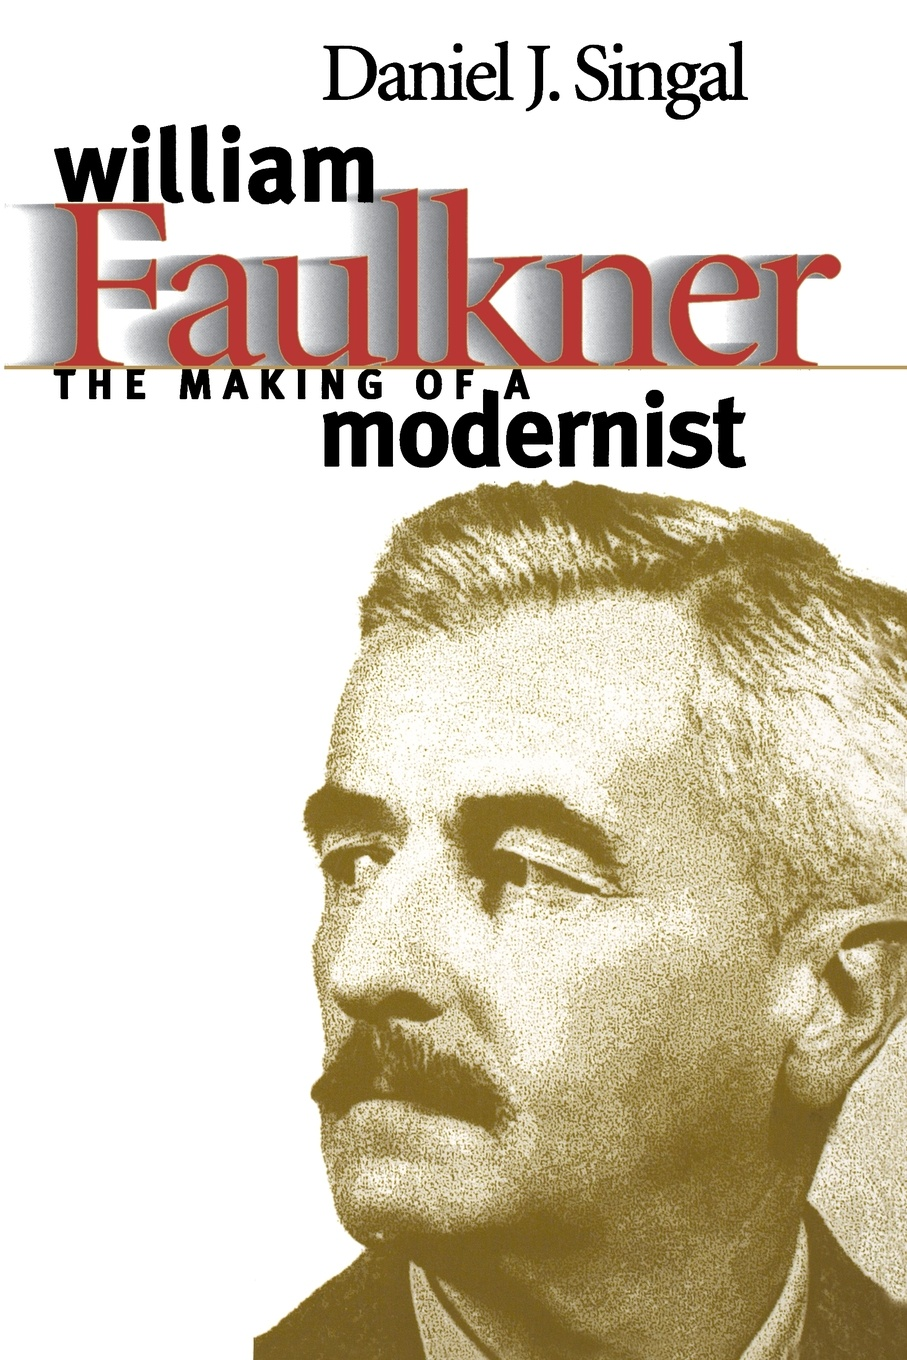 Daniel J. Singal William Faulkner. The Making of a Modernist faulkner william h review questions for mri